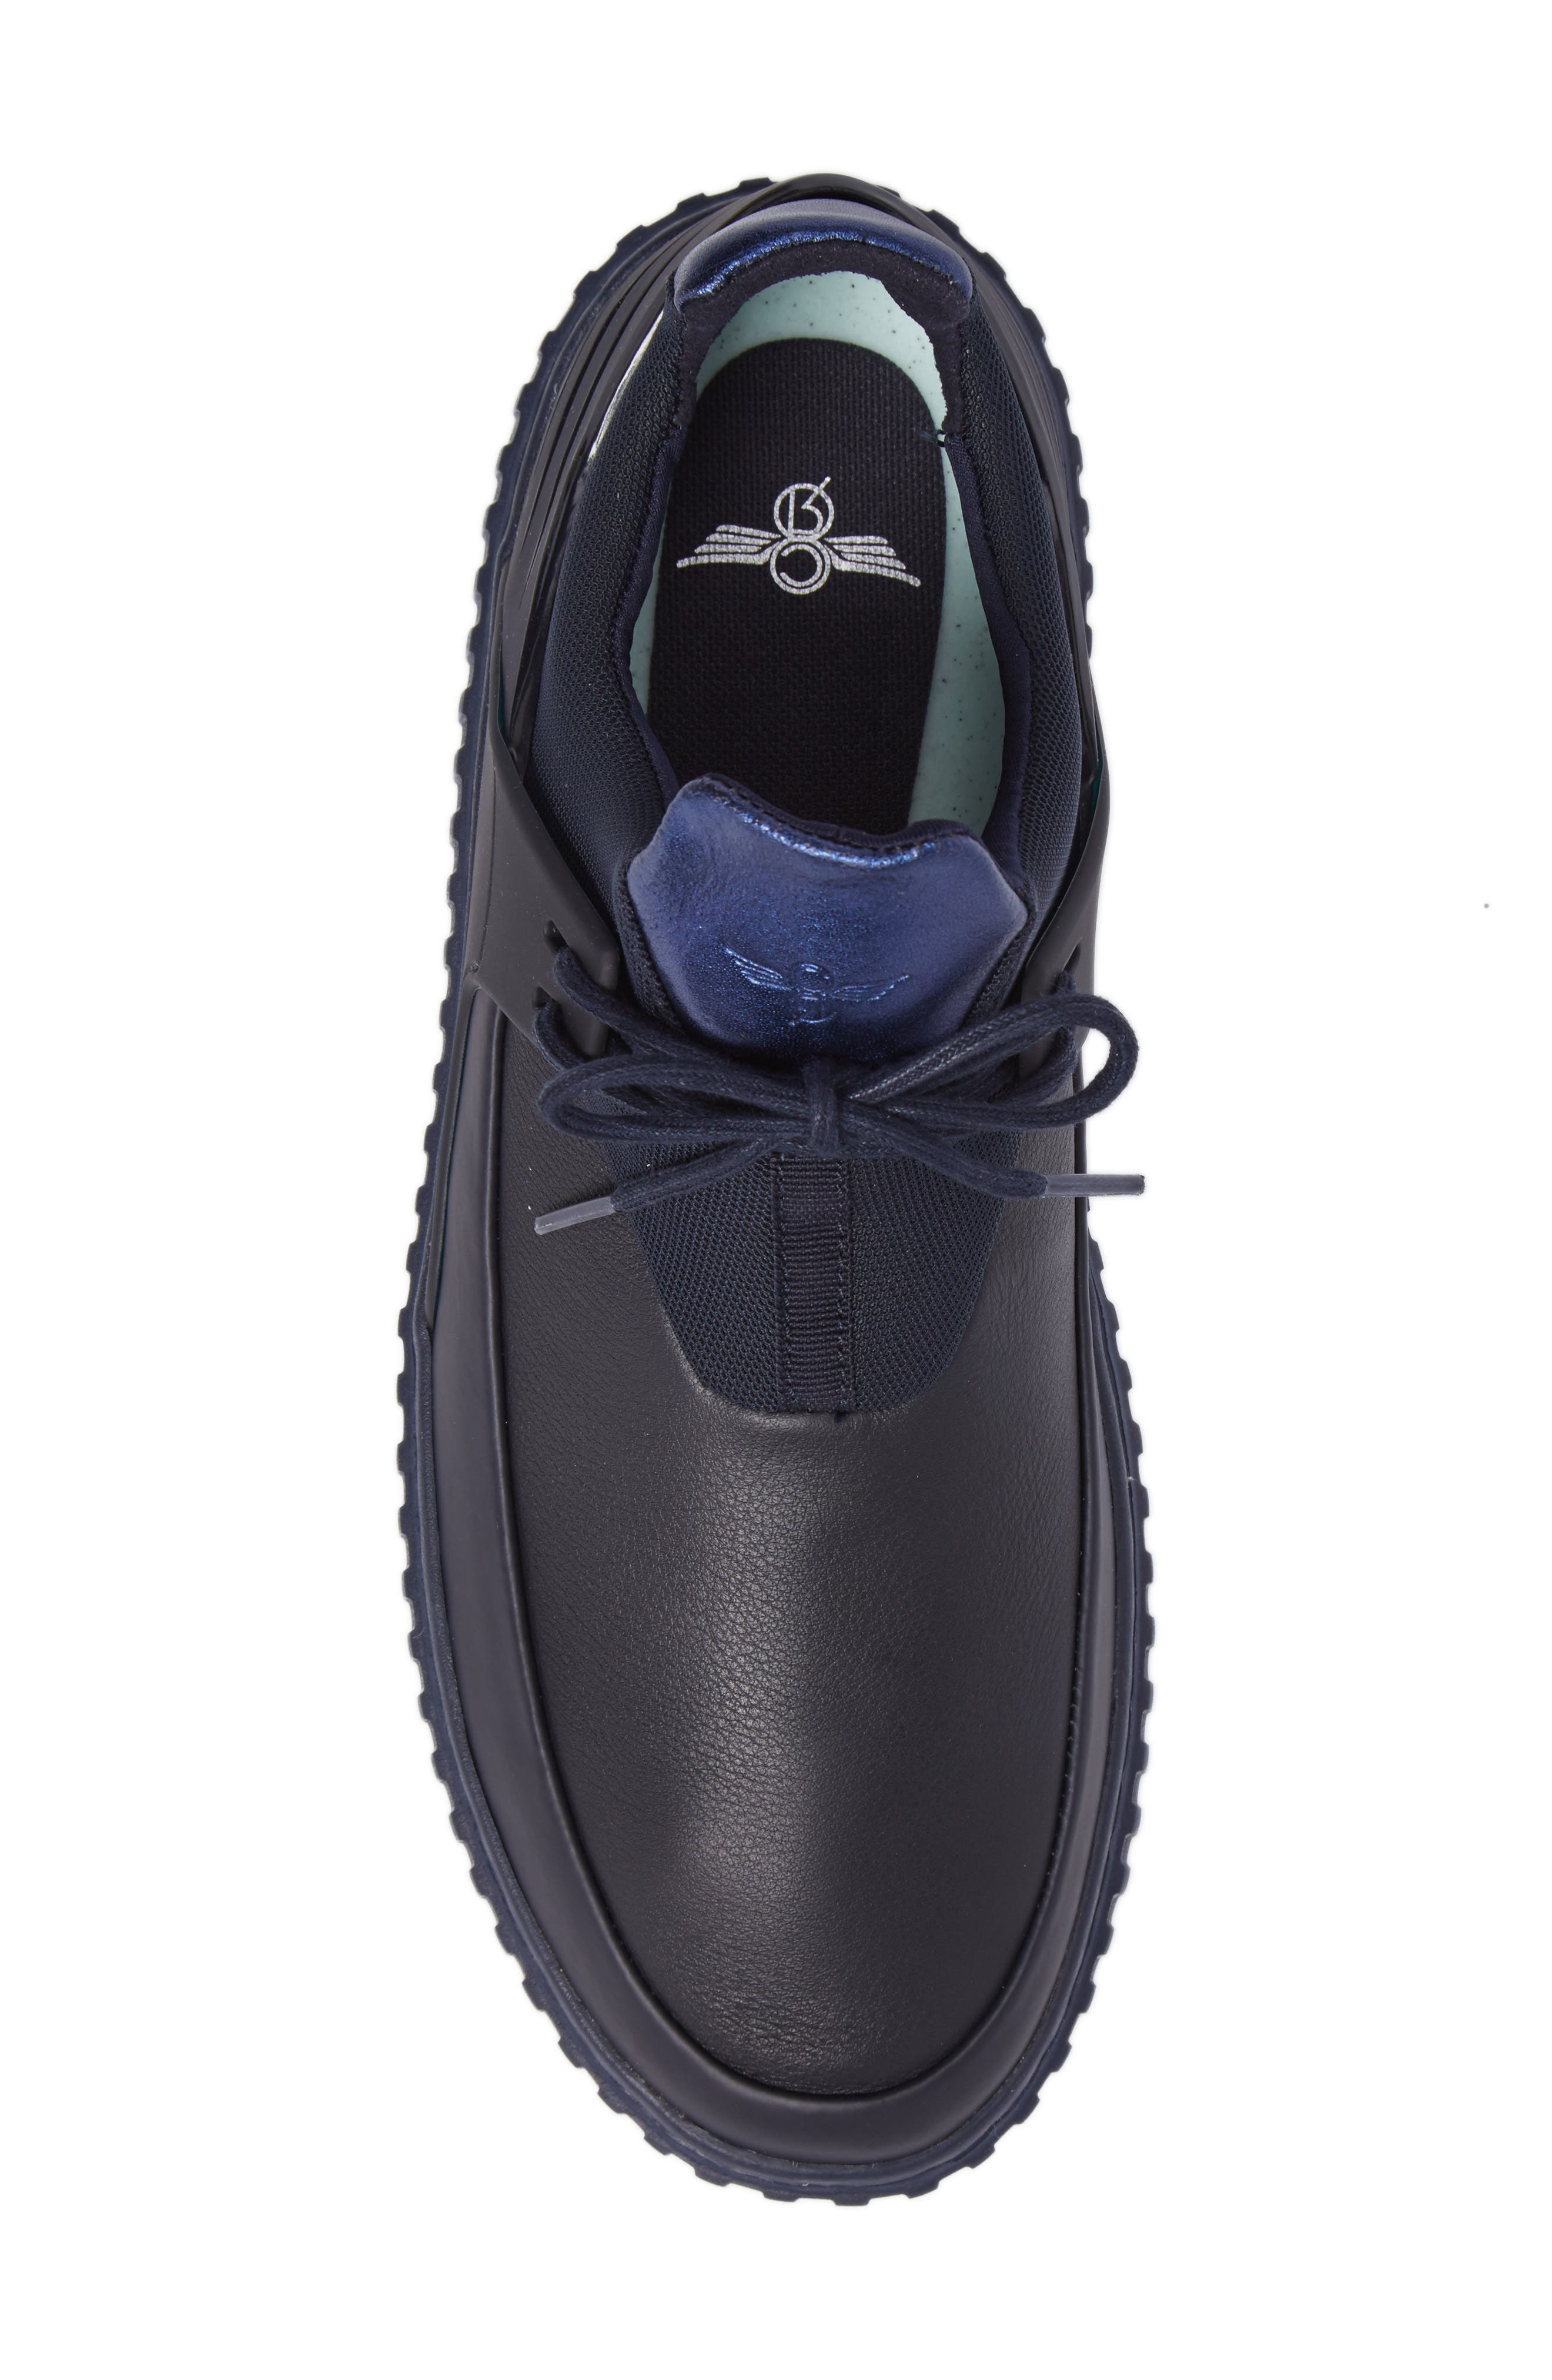 Castucci Mid Sneaker,                             Alternate thumbnail 5, color,                             Navy Leather